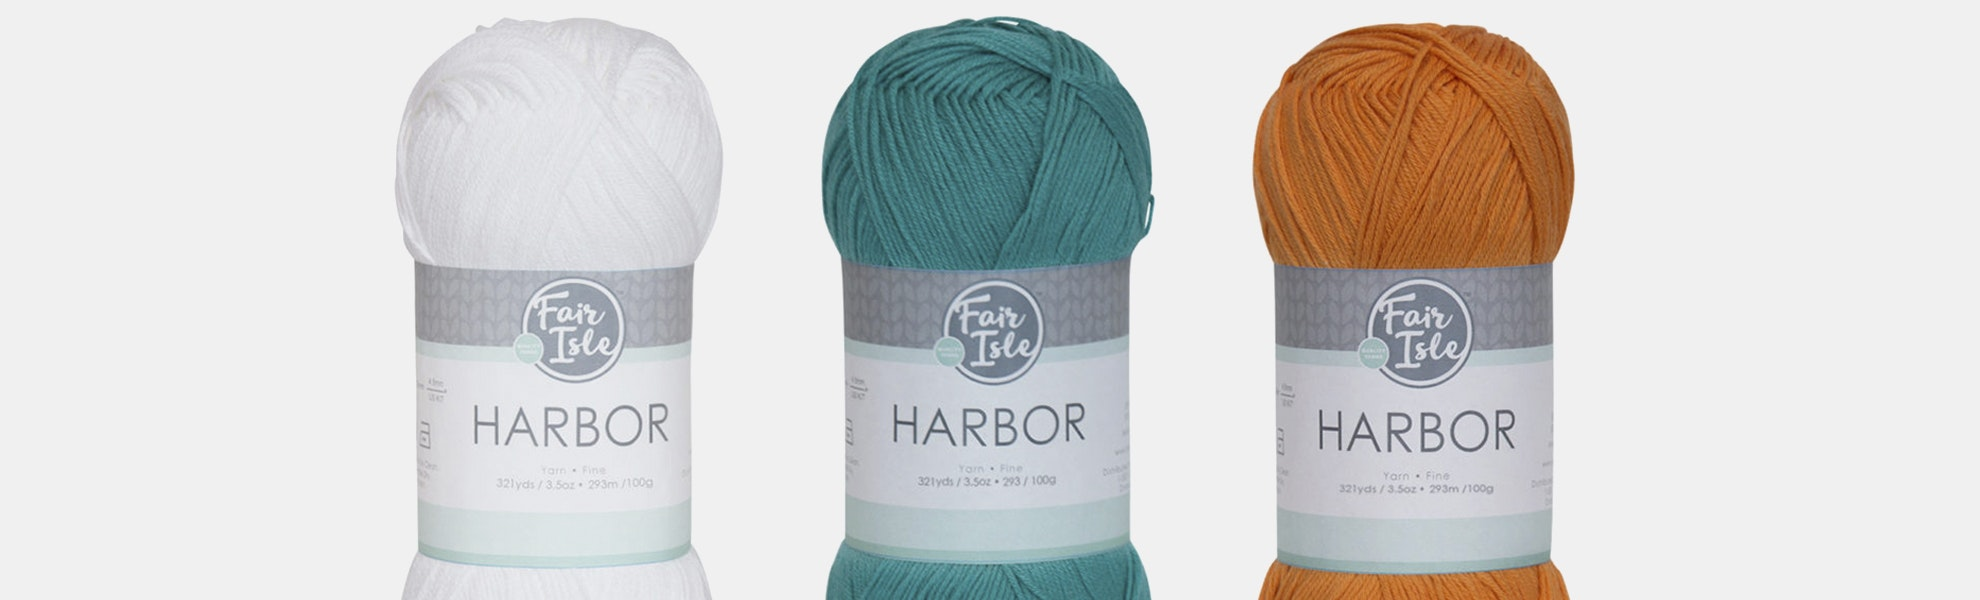 Harbor Yarn by Fair Isle (3-Pack)